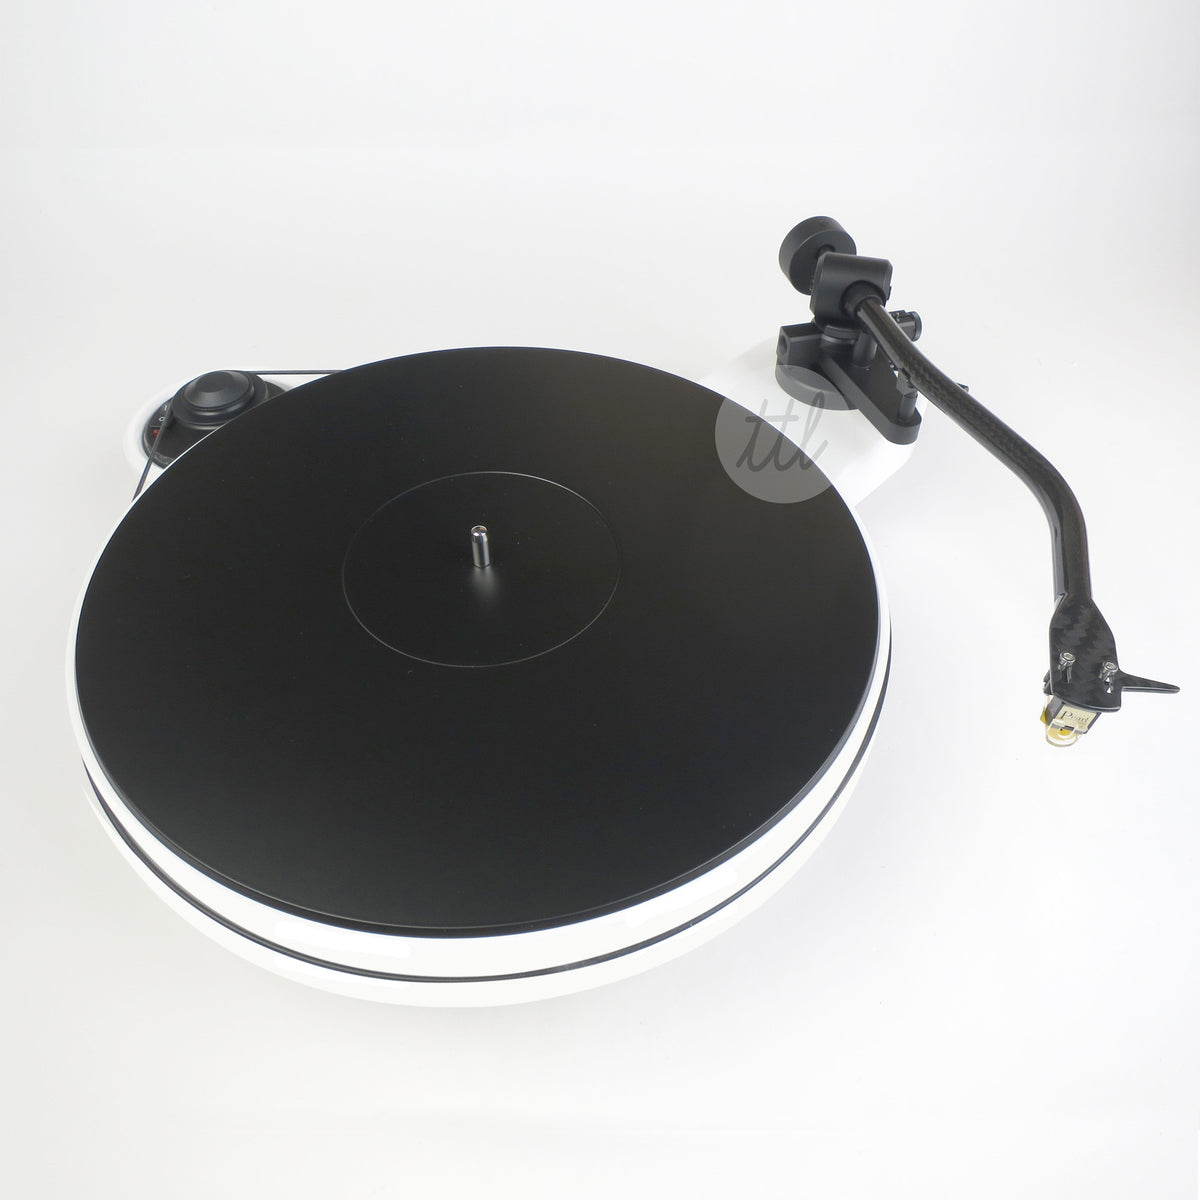 Project: RPM3 Turntable - White